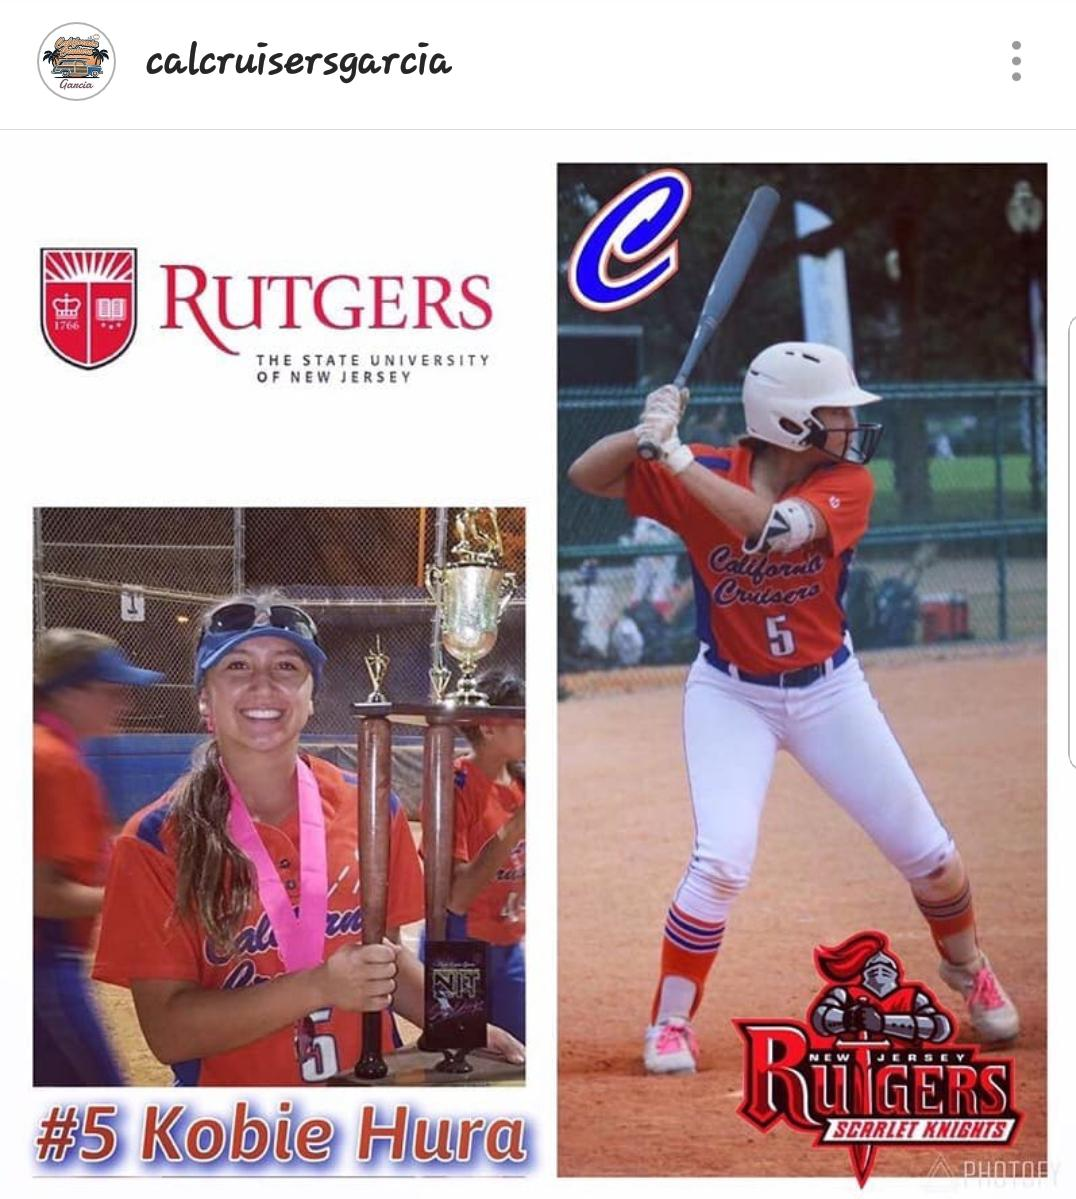 #5 KOBIE HURA   Highlight Video: Click on Image  Grad Year: 2020  Position(s): OF/SS  High School: Ayala  College: Rutgers